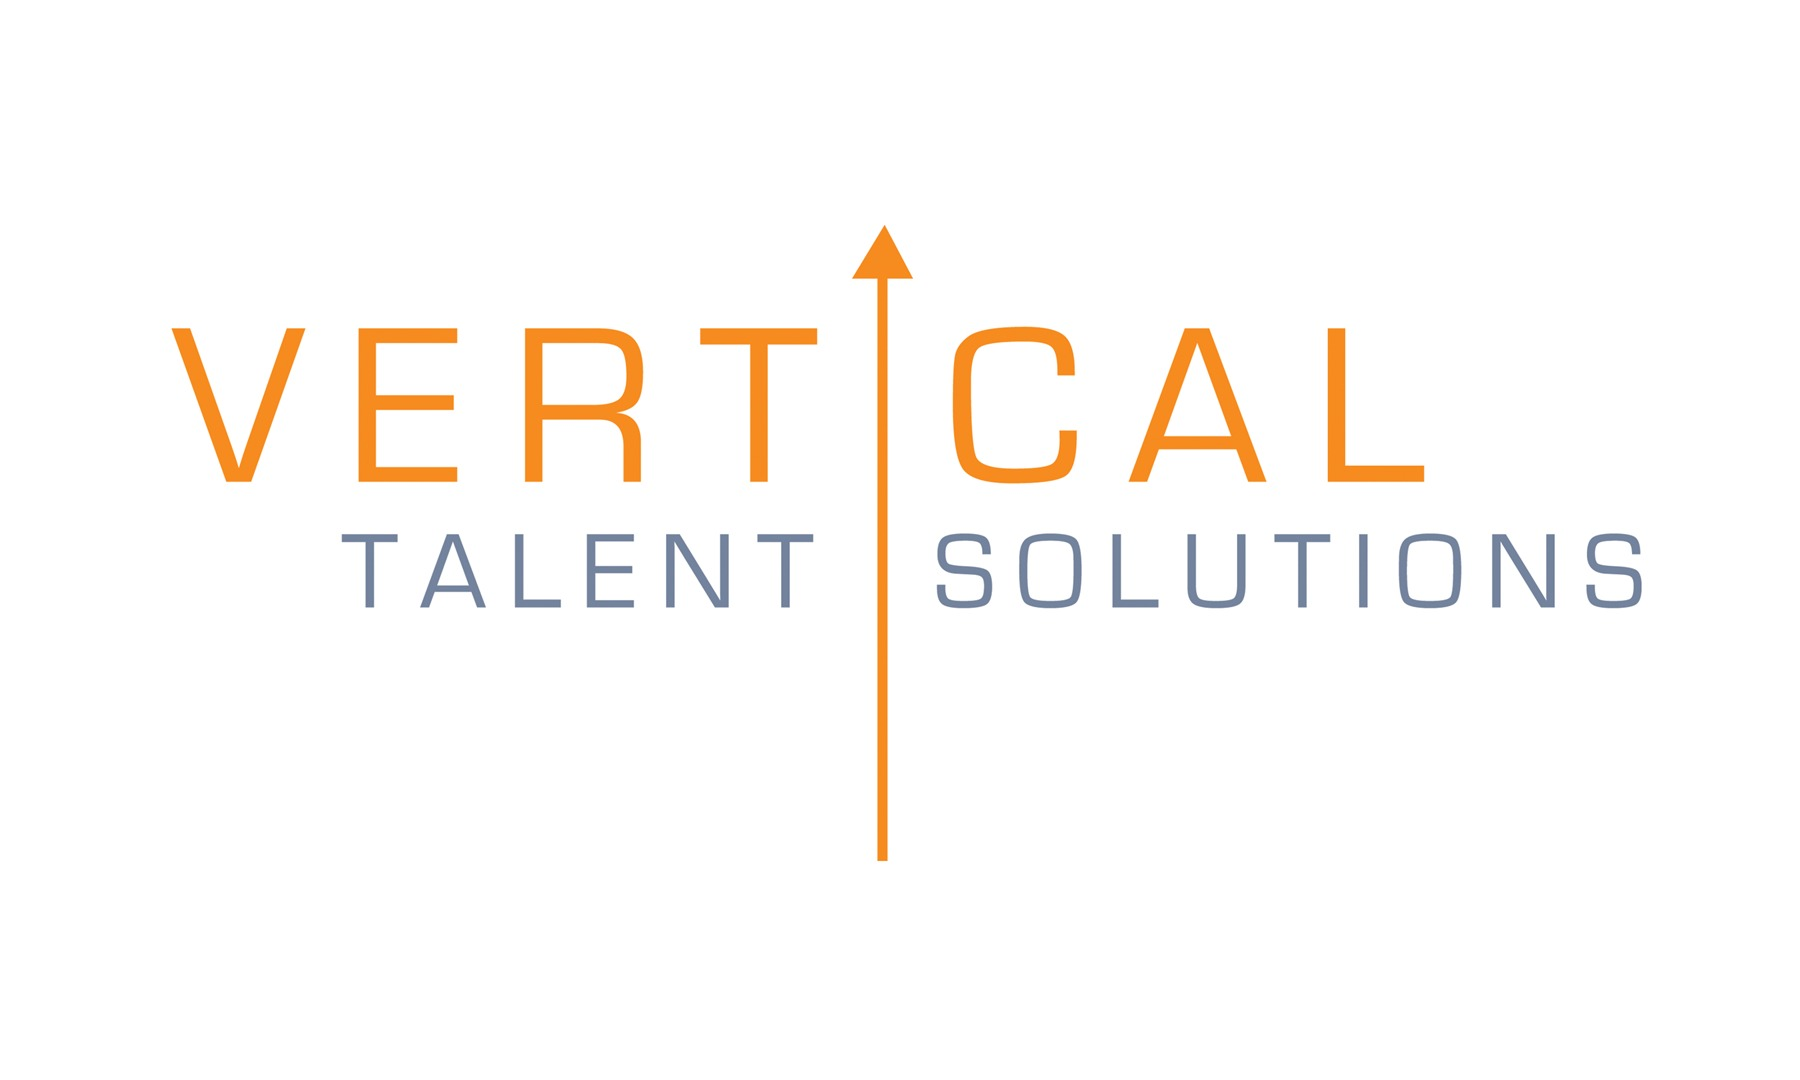 Vertical Talent Solutions